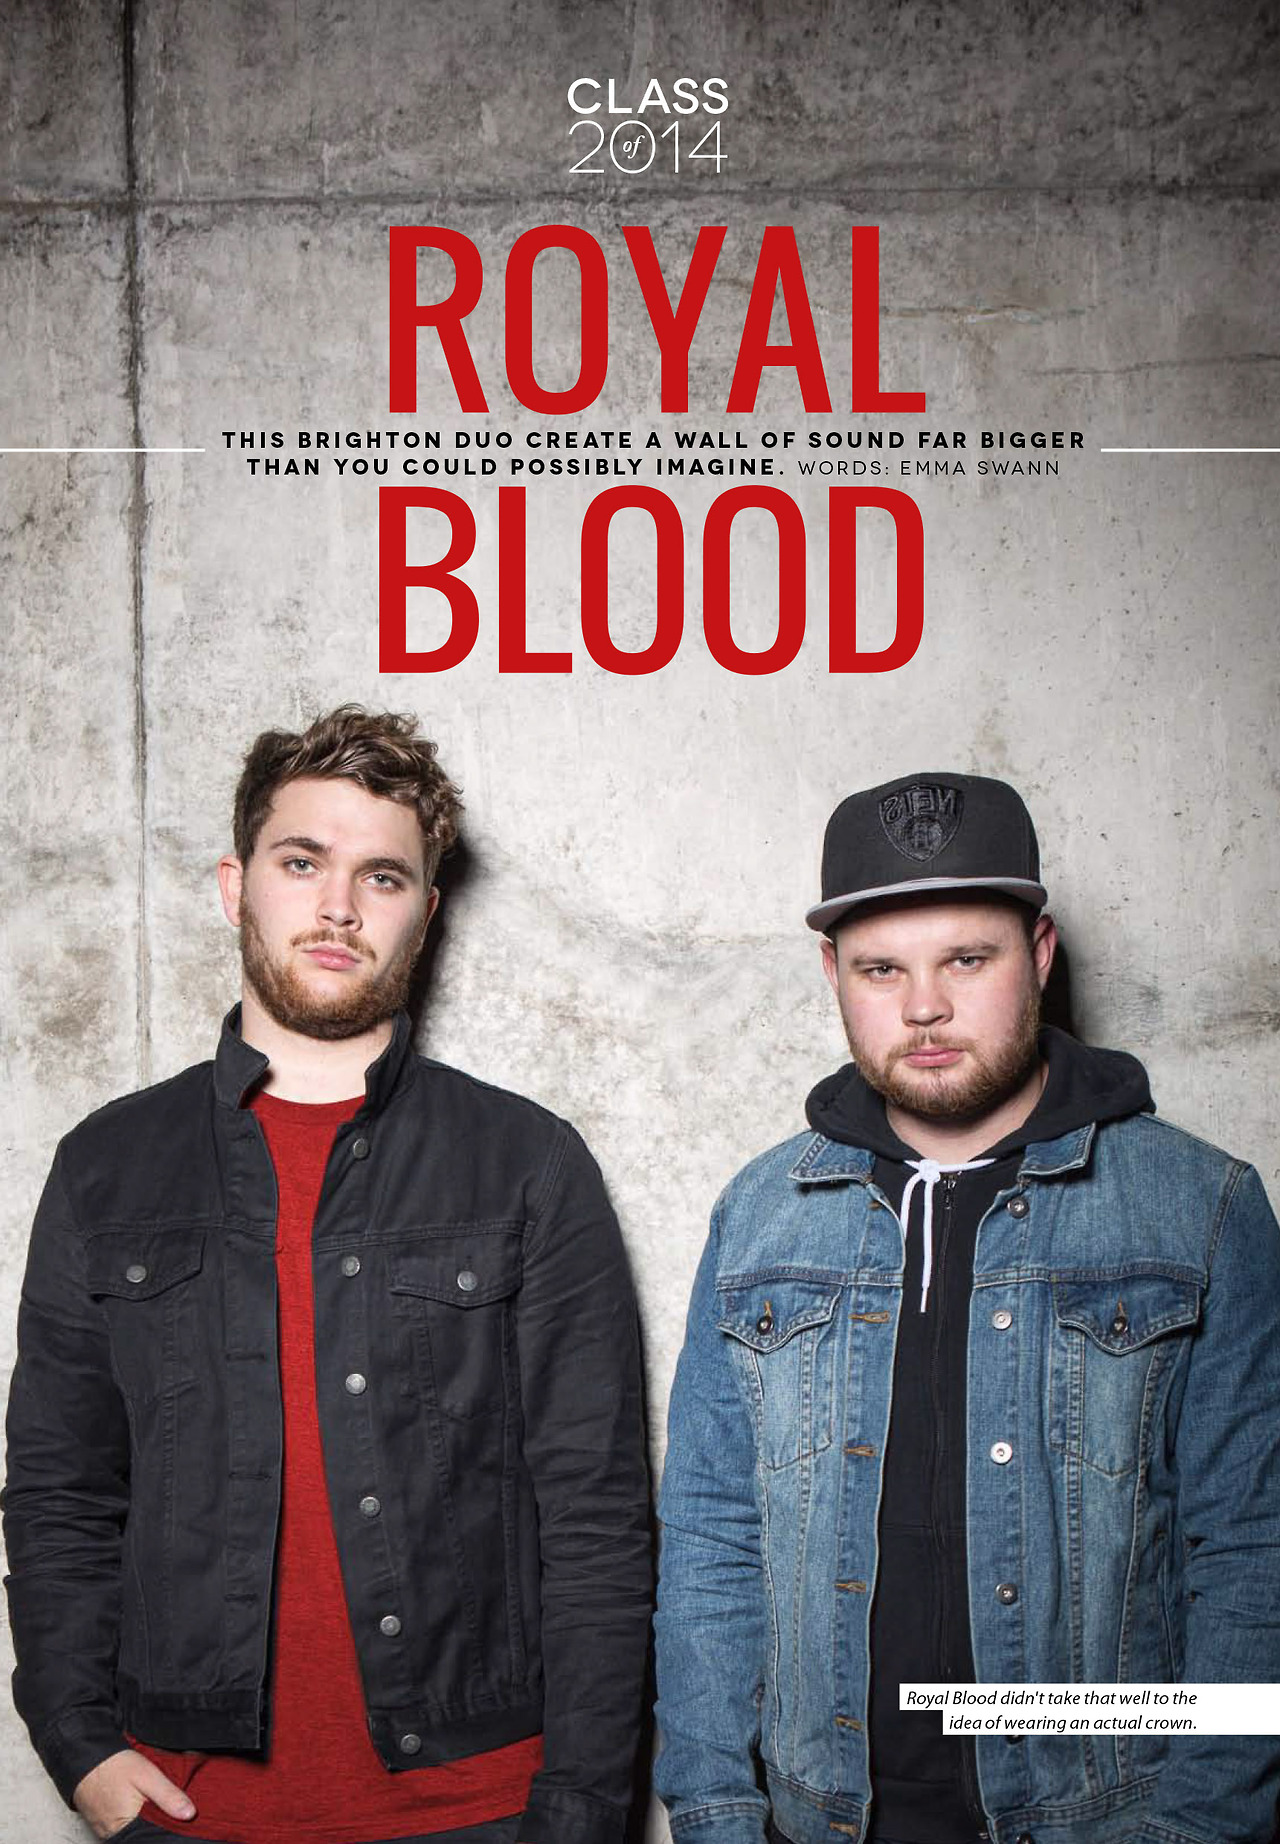 Royal Blood: Tear sheet from Fake DIY's, Class of 2014. Lovely guys, awesome music.